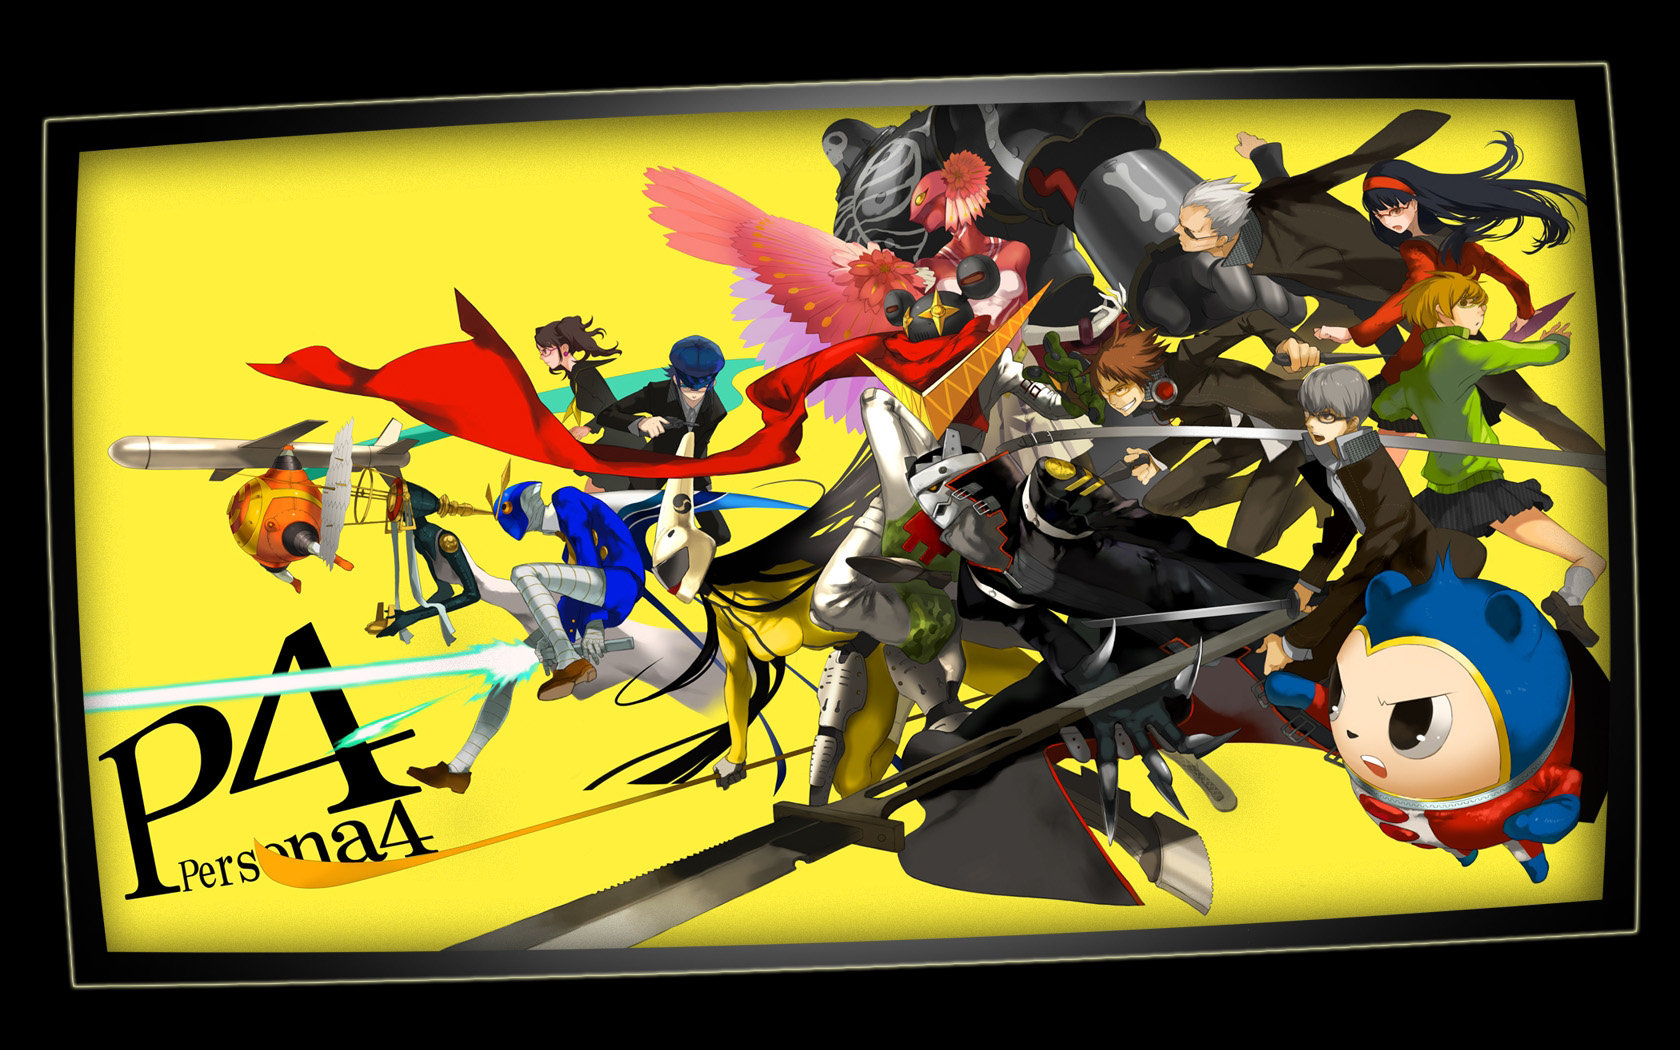 Best Persona 4 Wallpaper Id114273 For High Resolution Hd